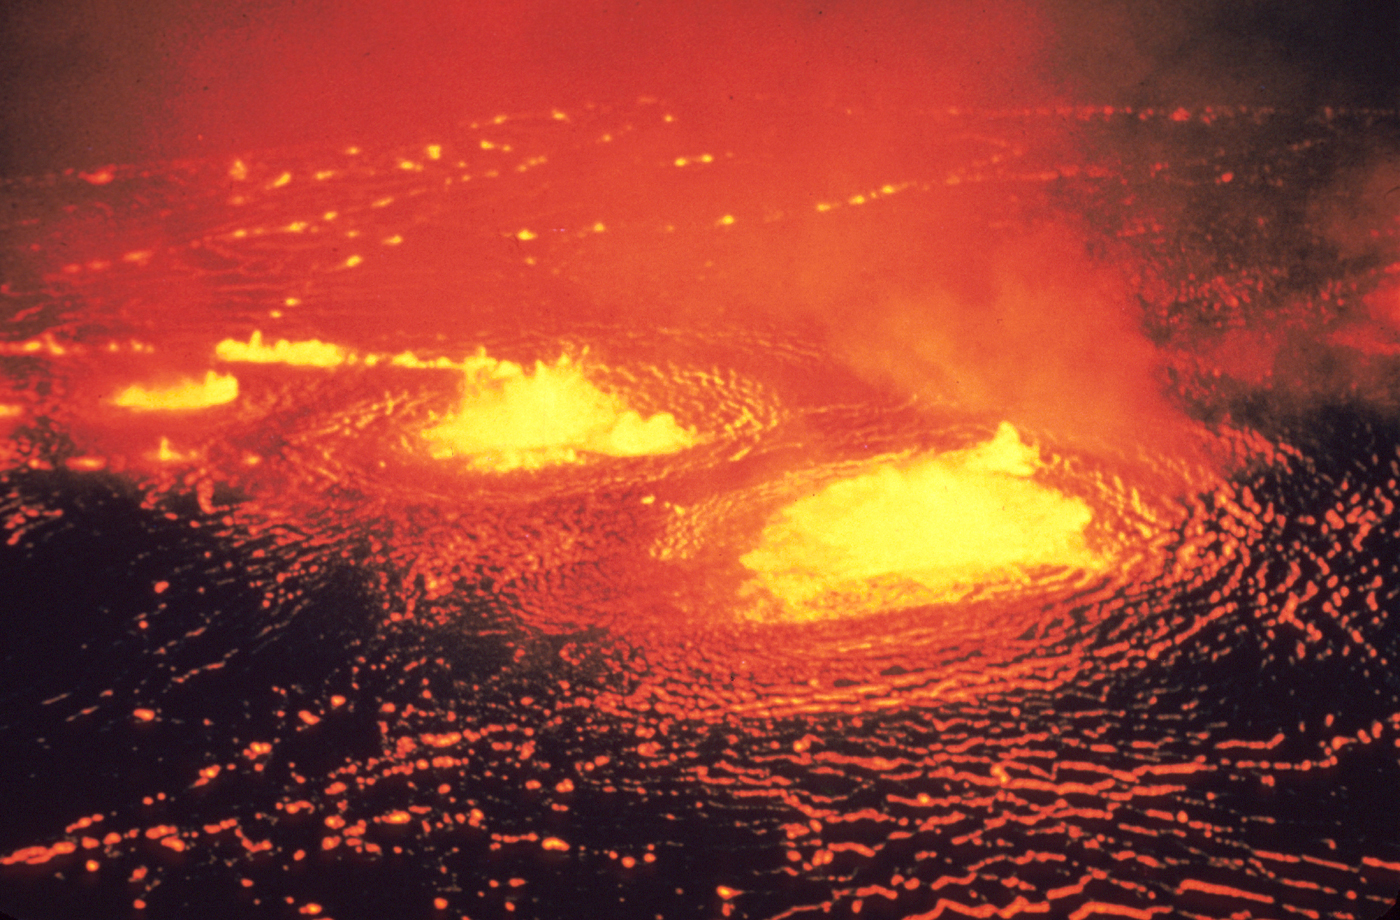 Lava lake wikipedia lava fountains in the halemaumau lava lake klauea ccuart Choice Image